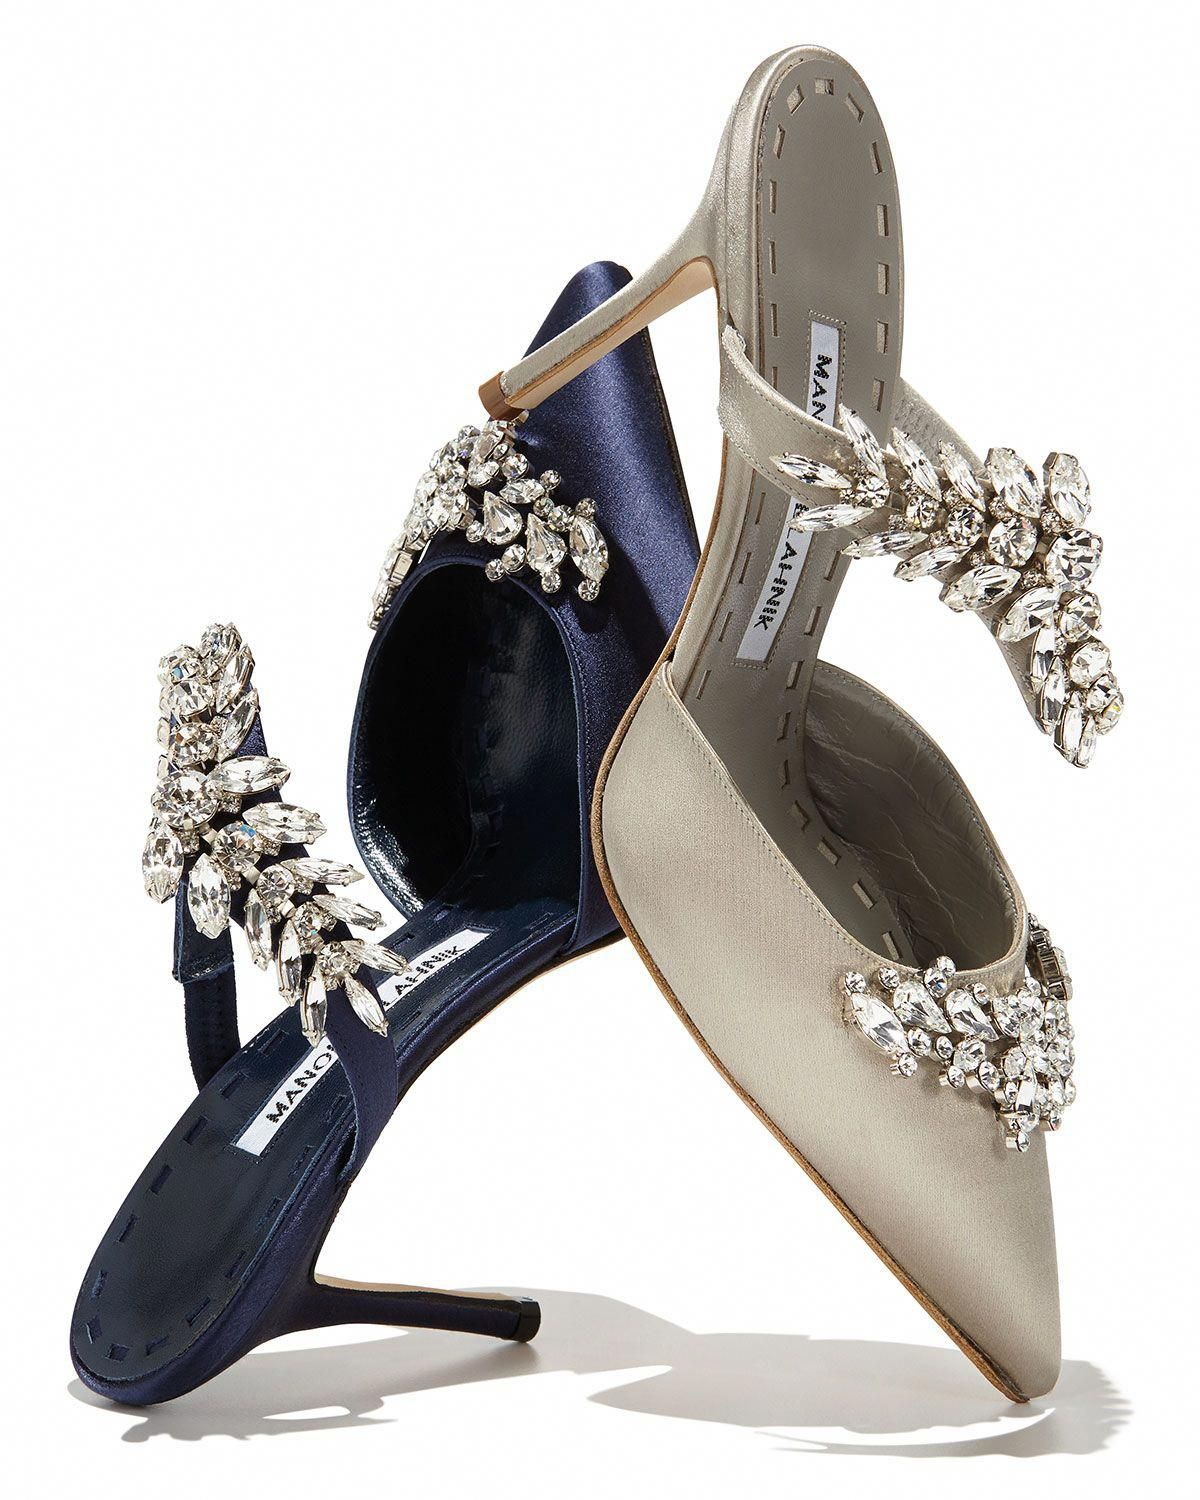 a872106df4265 Manolo Blahnik Lurum Crystal-Embellished Mule Pump #ManoloBlahnik ...